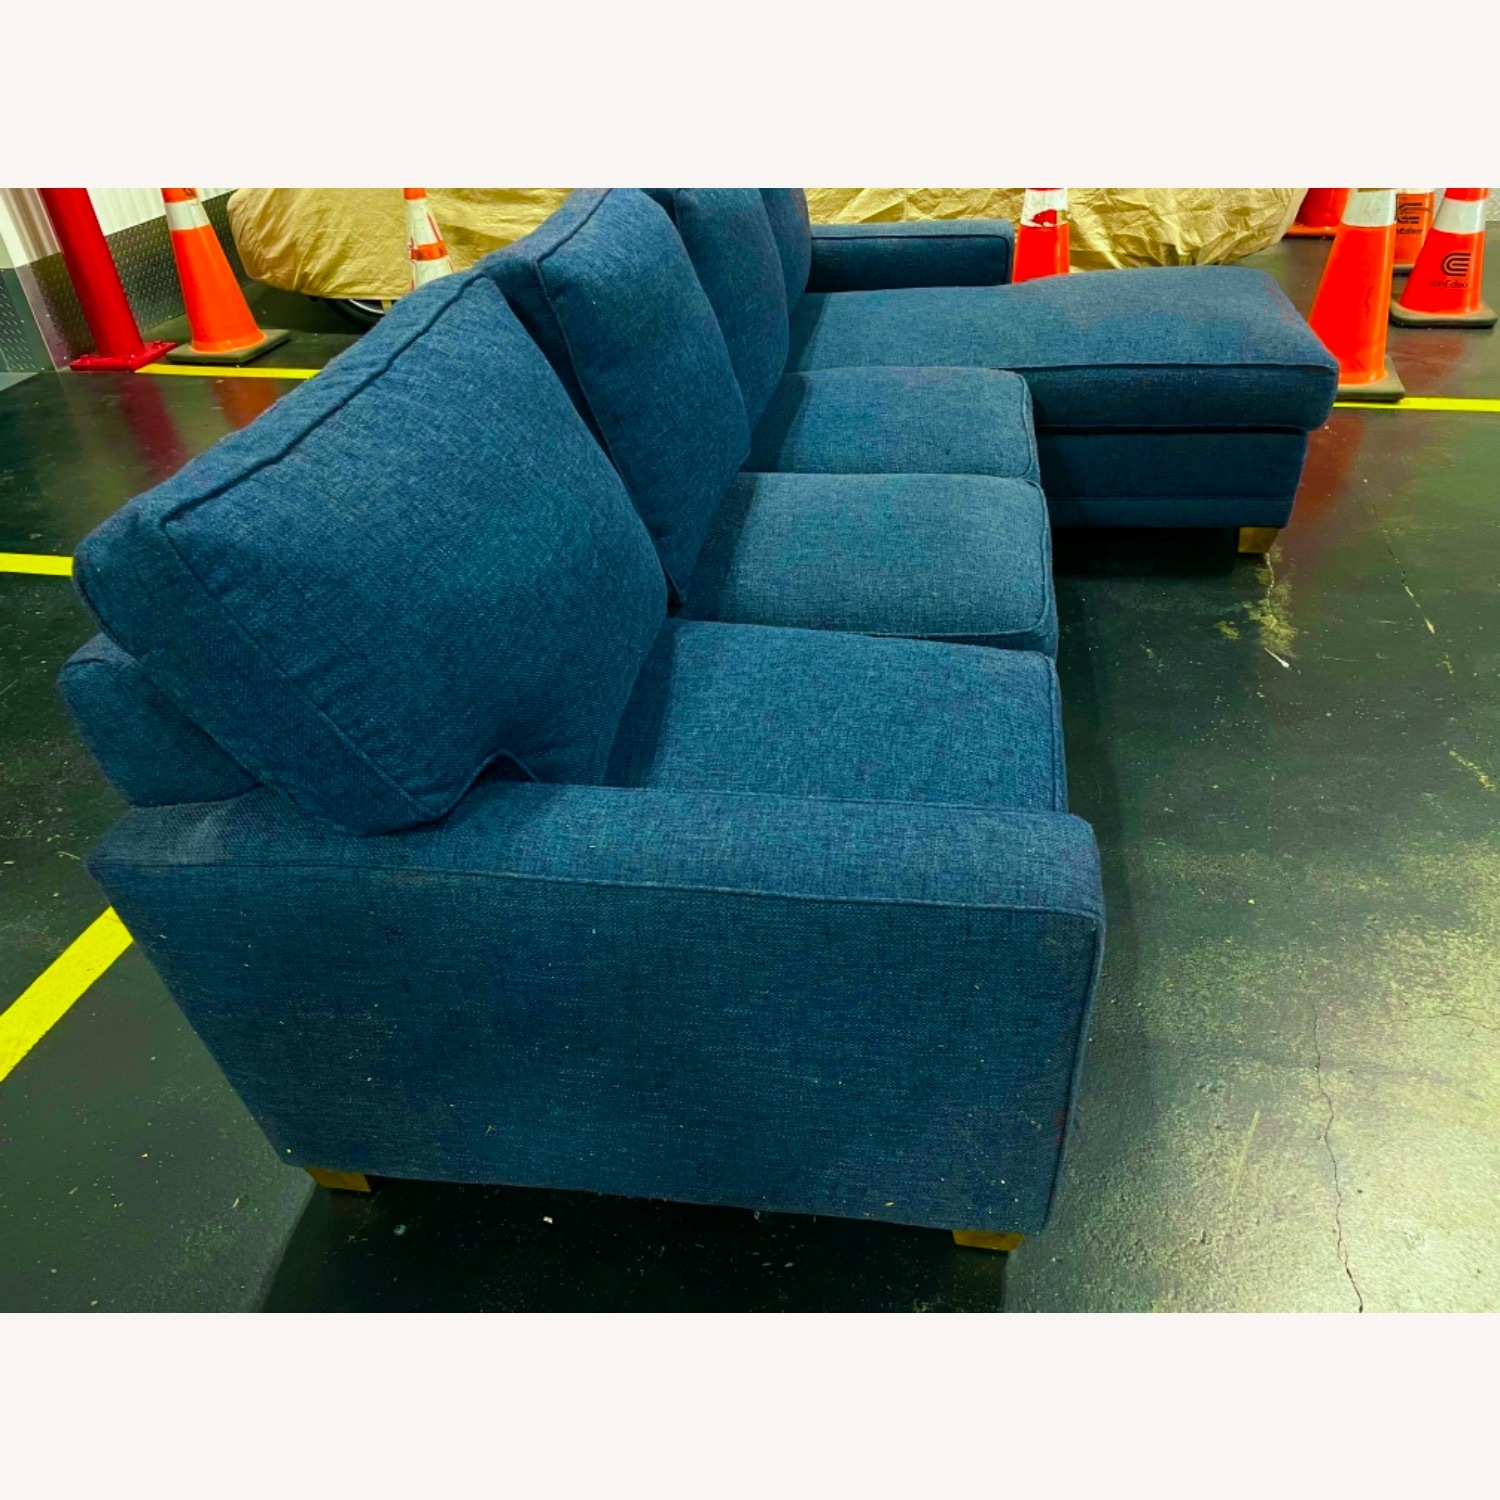 Rowe My Style 2 Piece Sectional - image-8